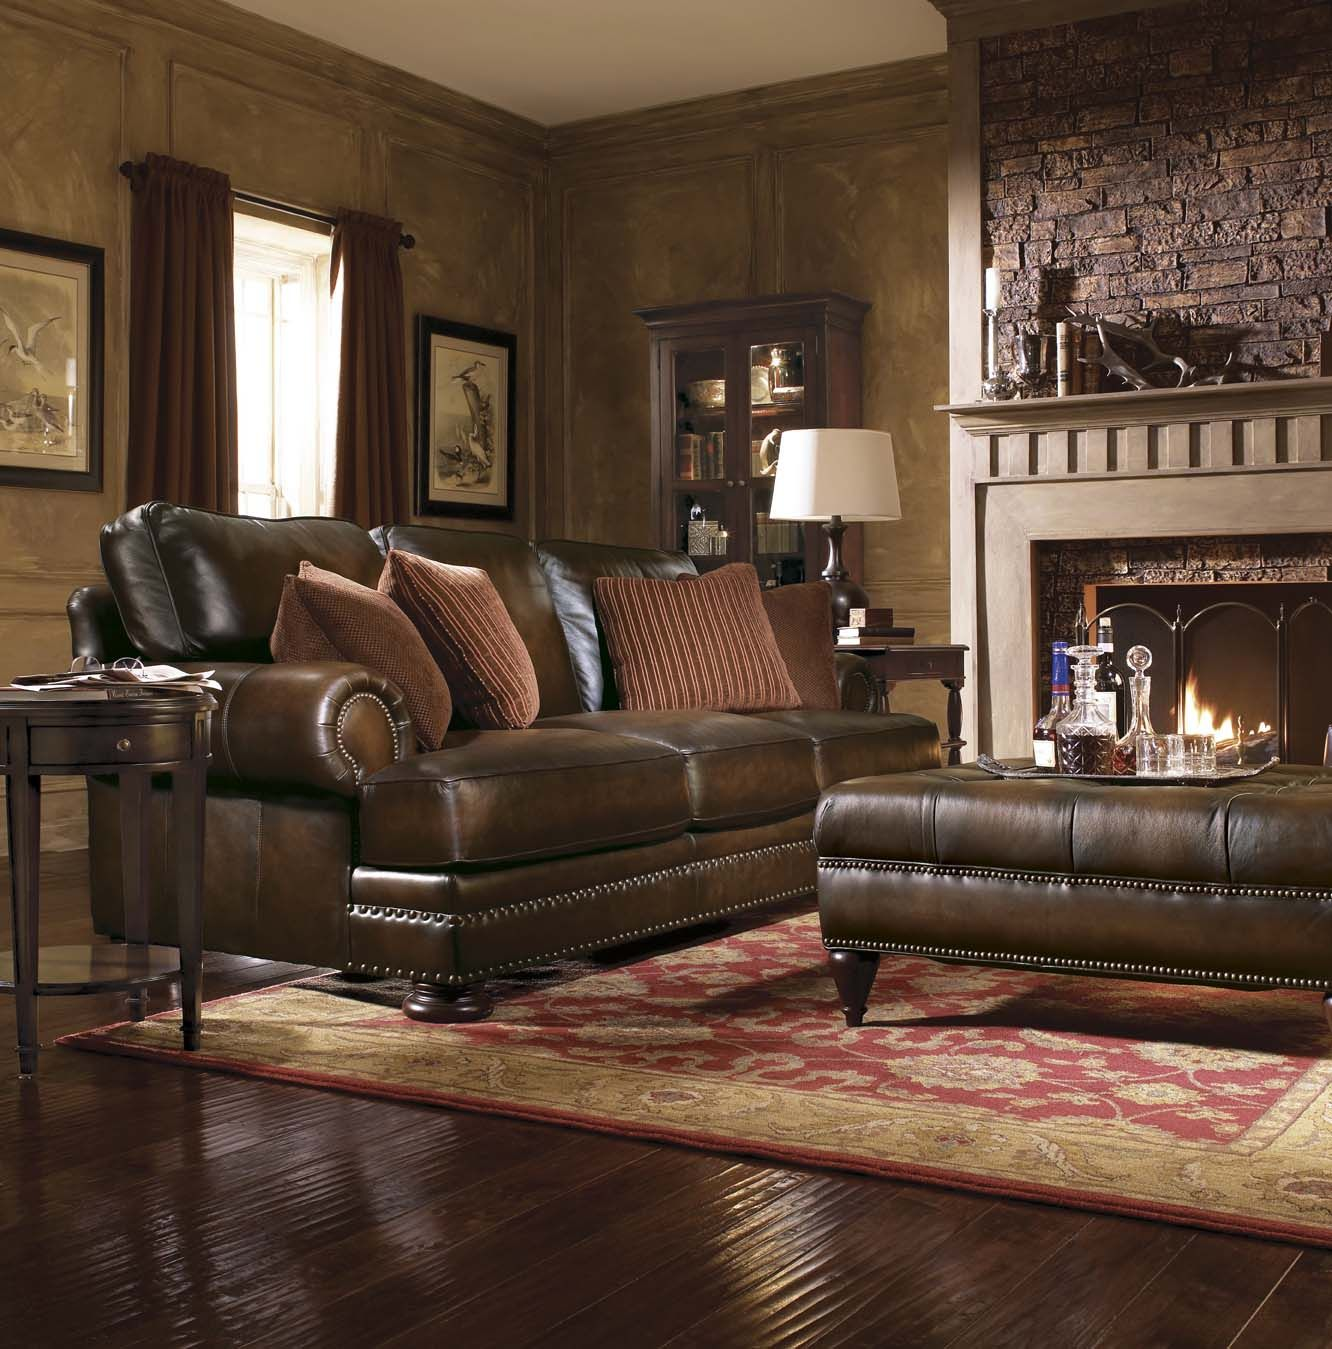 Leather Furniture Decorating Ideas Leather Sofa Tips To Decorate Your Living Room Http